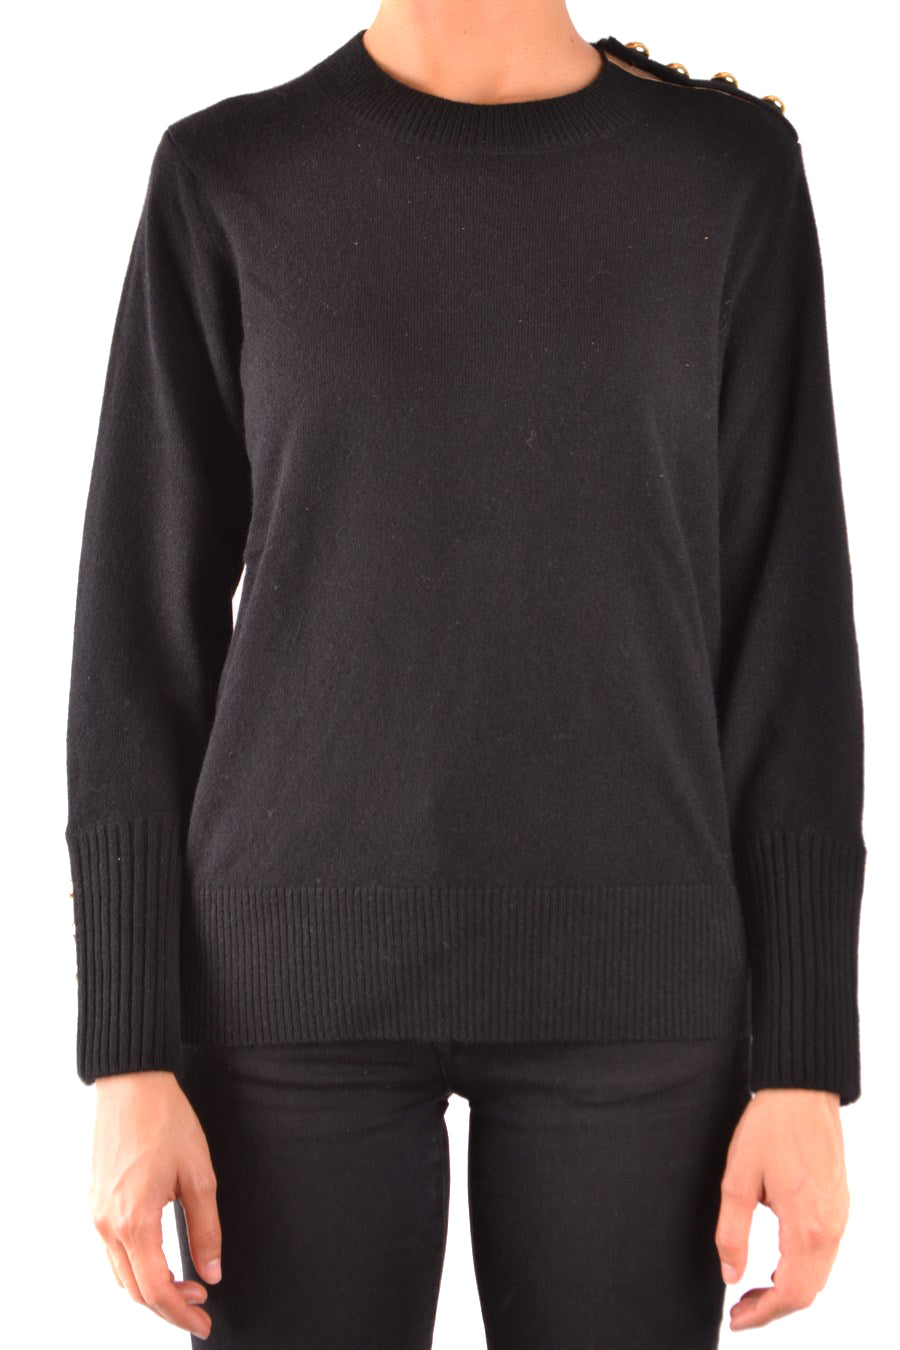 Sweater Burberry-Sweaters - WOMAN-Product Details Terms: New With LabelYear: 2018Main Color: BlackGender: WomanMade In: ChinaManufacturer Part Number: 4030426 1001Size: IntSeason: Fall / WinterClothing Type: Sweater And CardiganComposition: Cashmere 100%-Keyomi-Sook